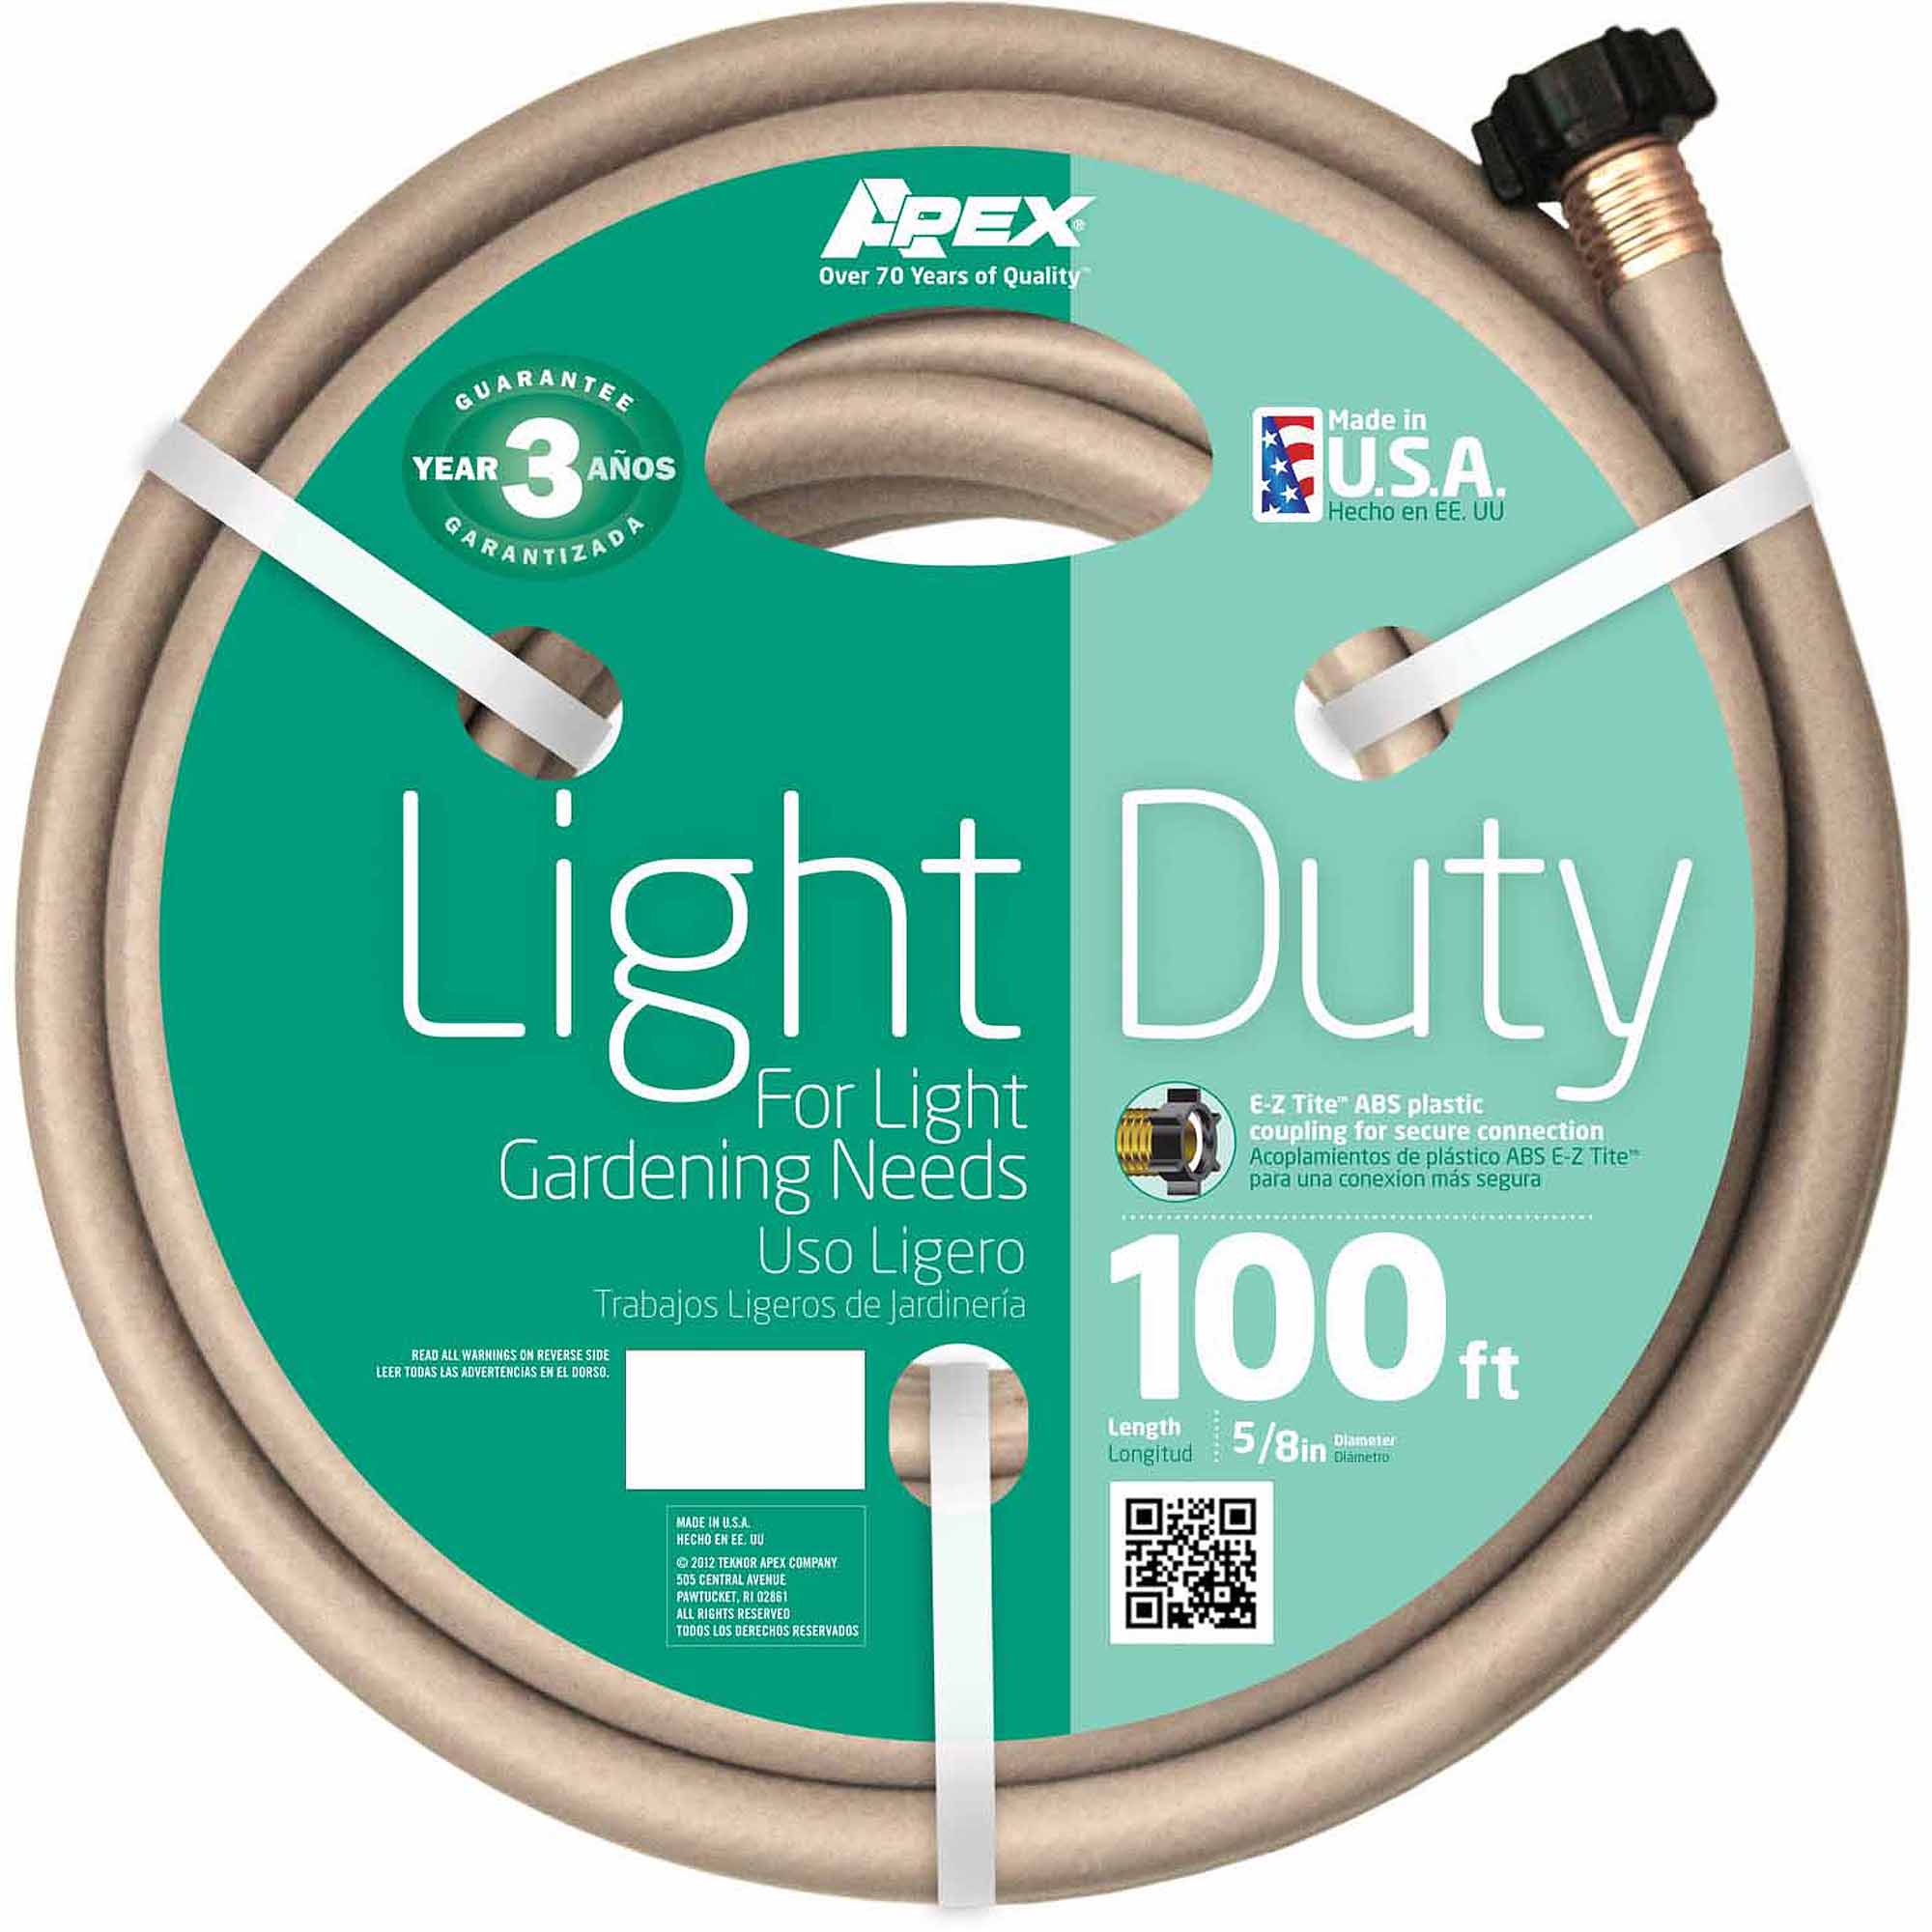 "Teknor Apex 8400-100 5/8"" x 100' Light Duty Garden Hose"